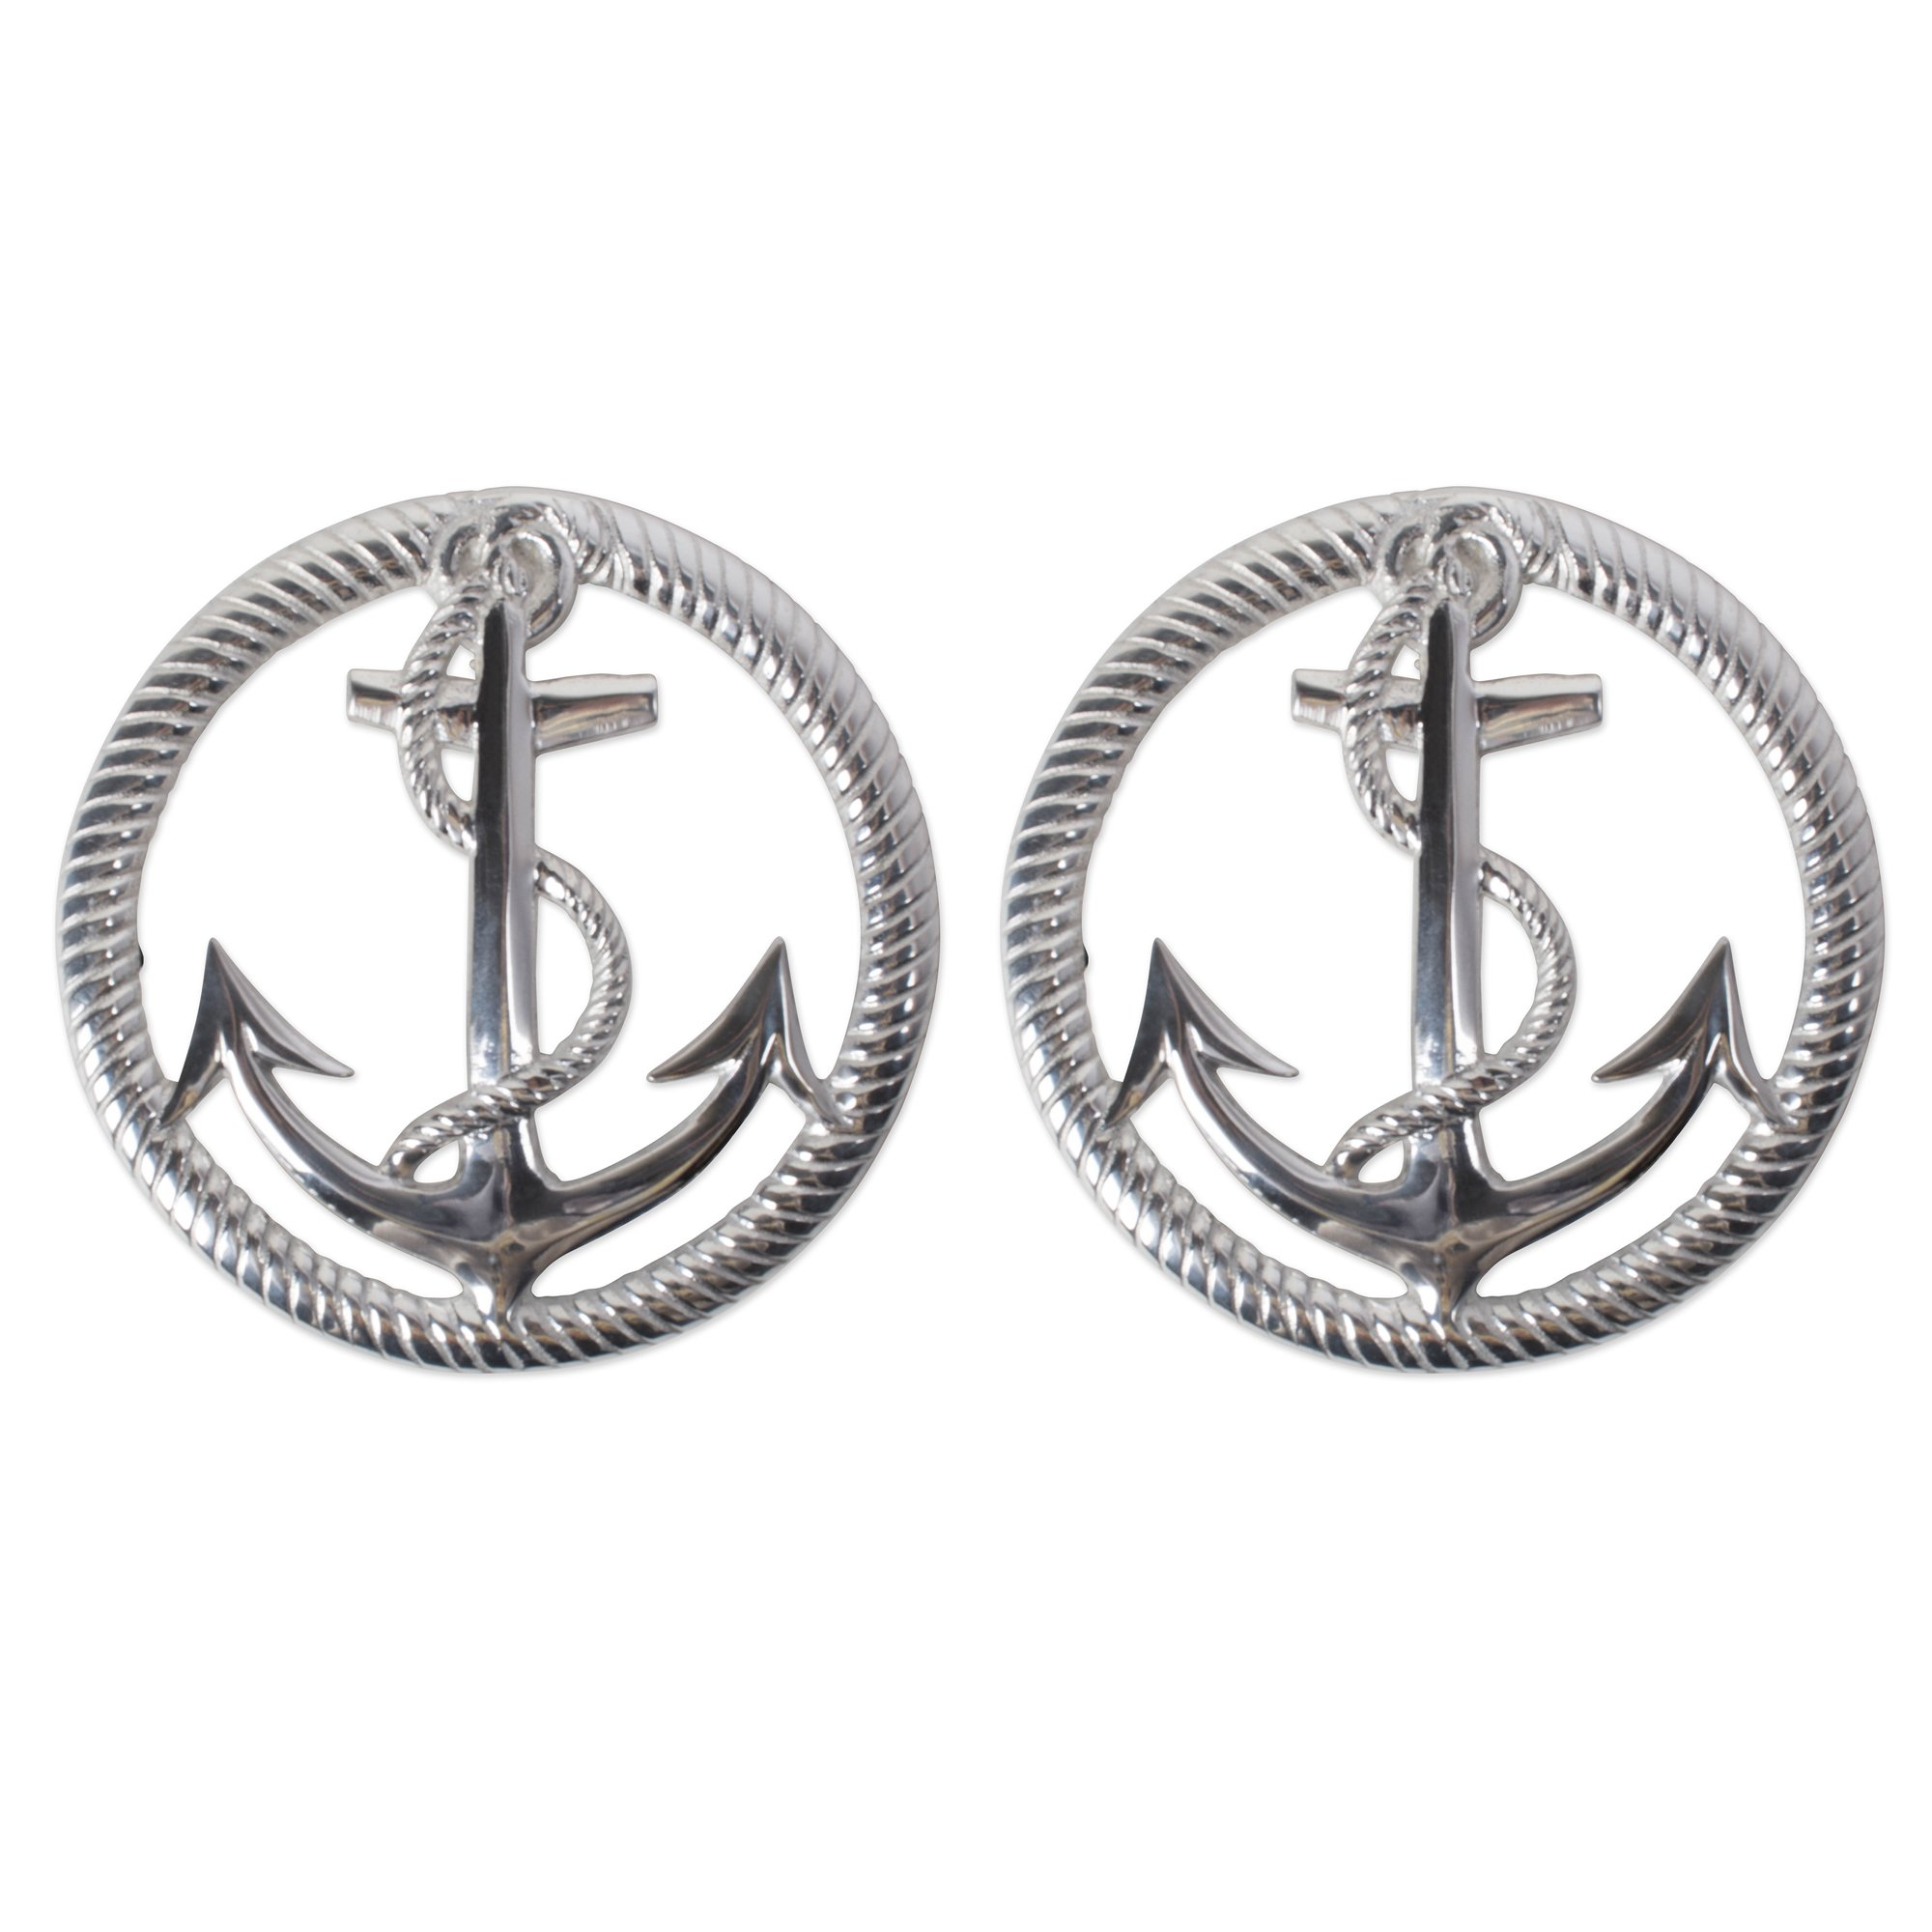 DII CAMZ10639 Cast Iron Anchor and Rope Trivet with Rubber Pegs for Hot Dishes, Kitchen or Dining Table, Set of 2, 8 x 8, Anchor & Rope 2 Pack